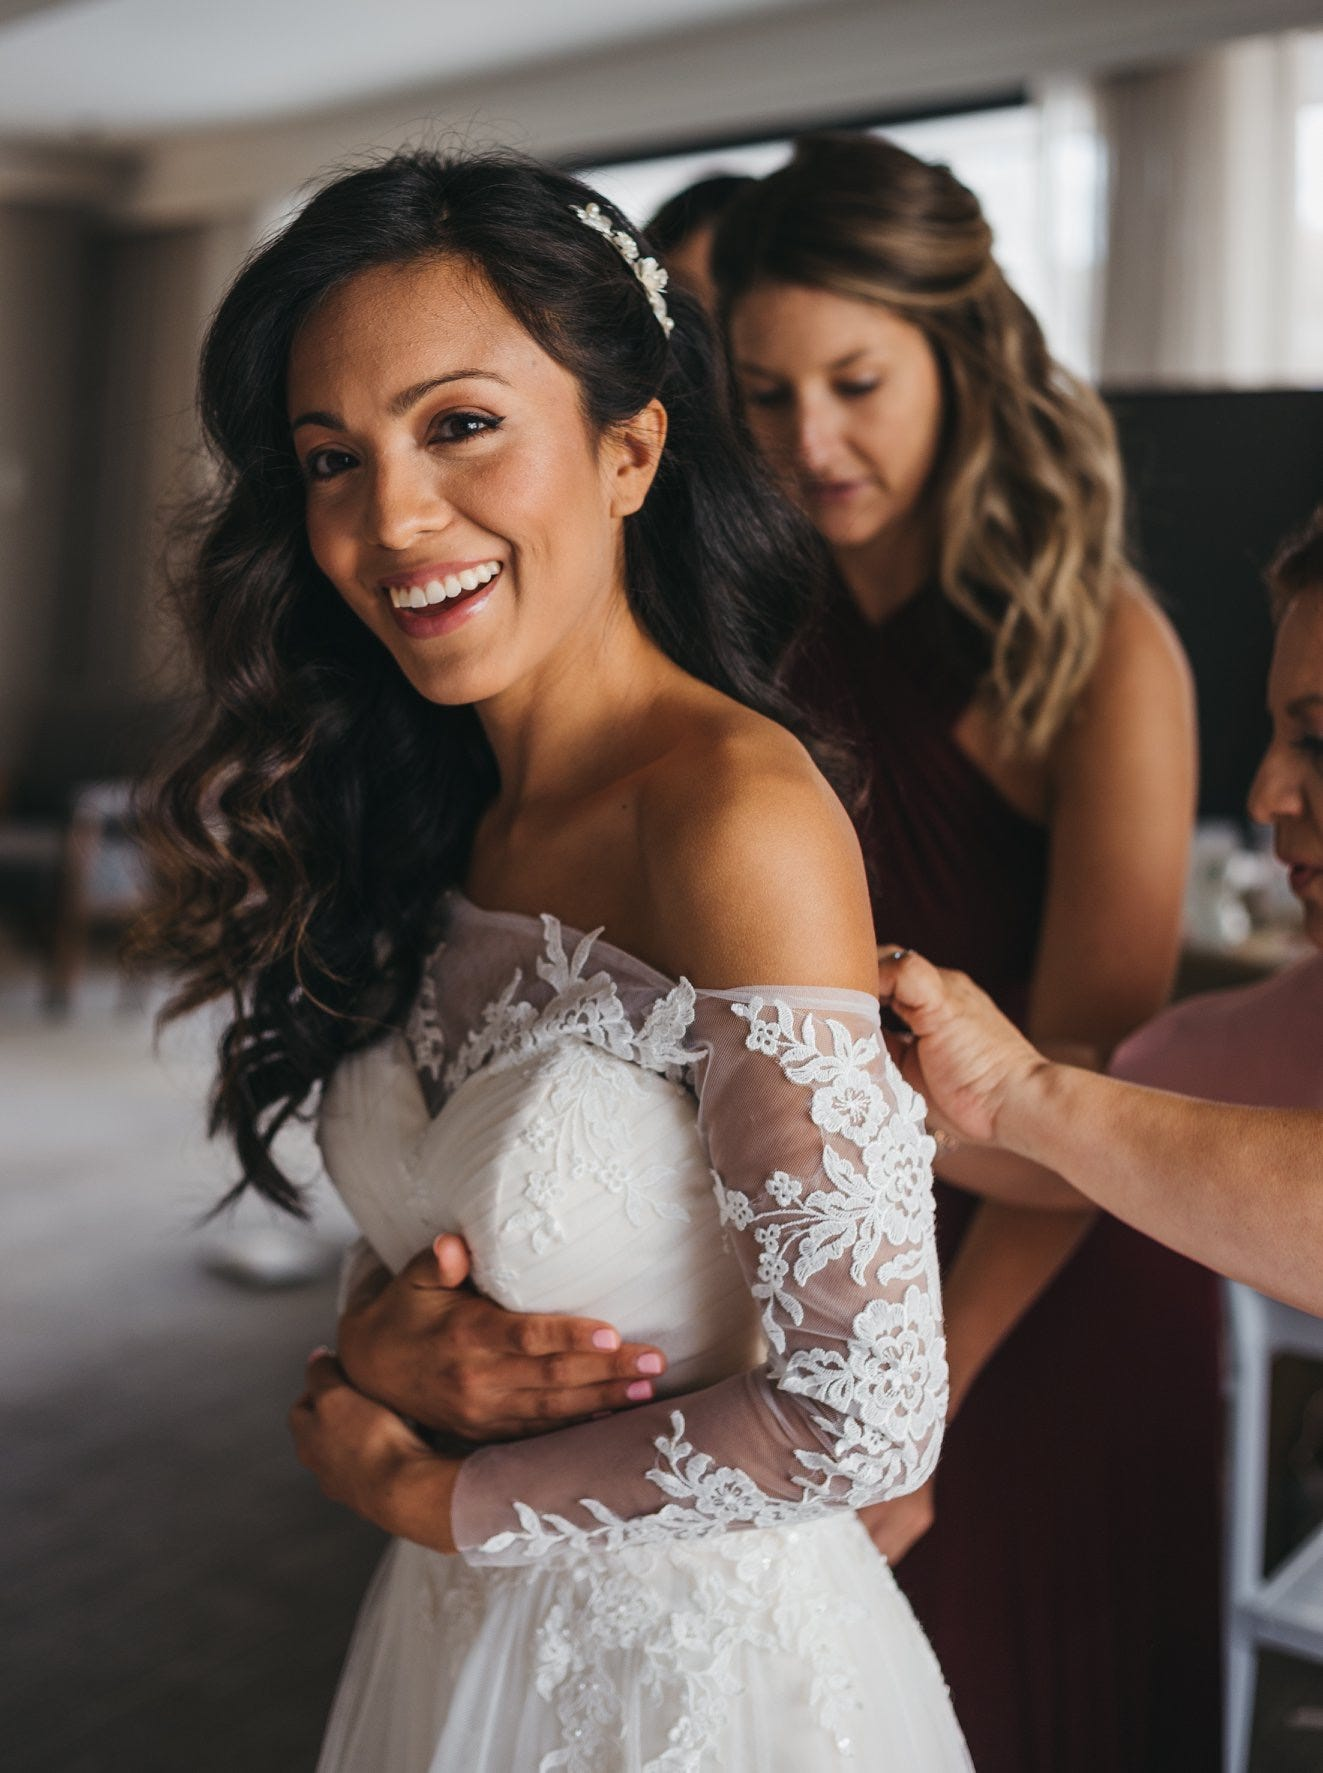 Brides Spend On Wedding Hair And Makeup